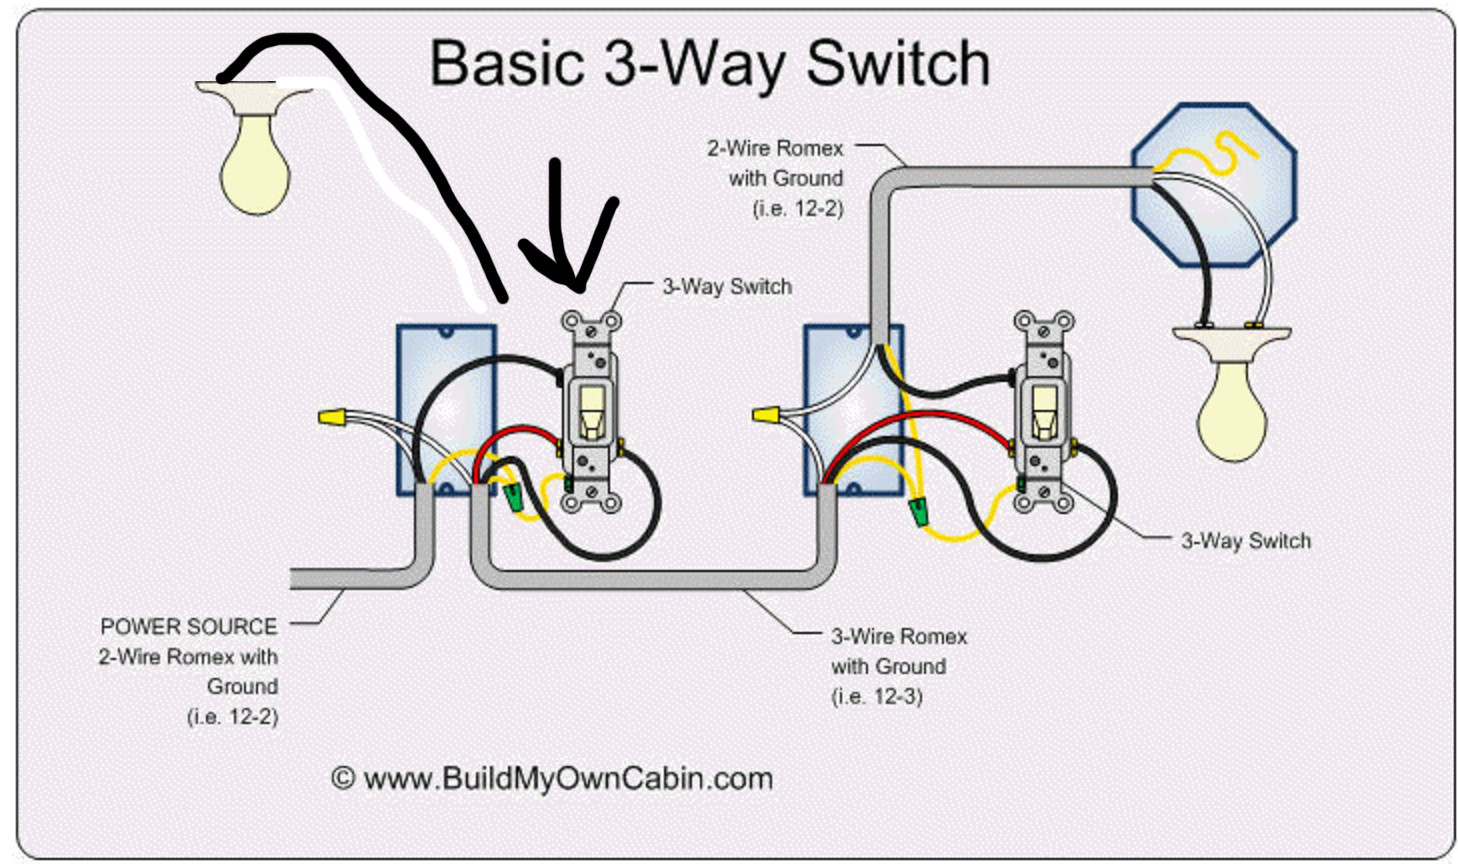 wiring diagram 2 switches 1 light 2006 f150 starter lighting additional to a 3 way switch